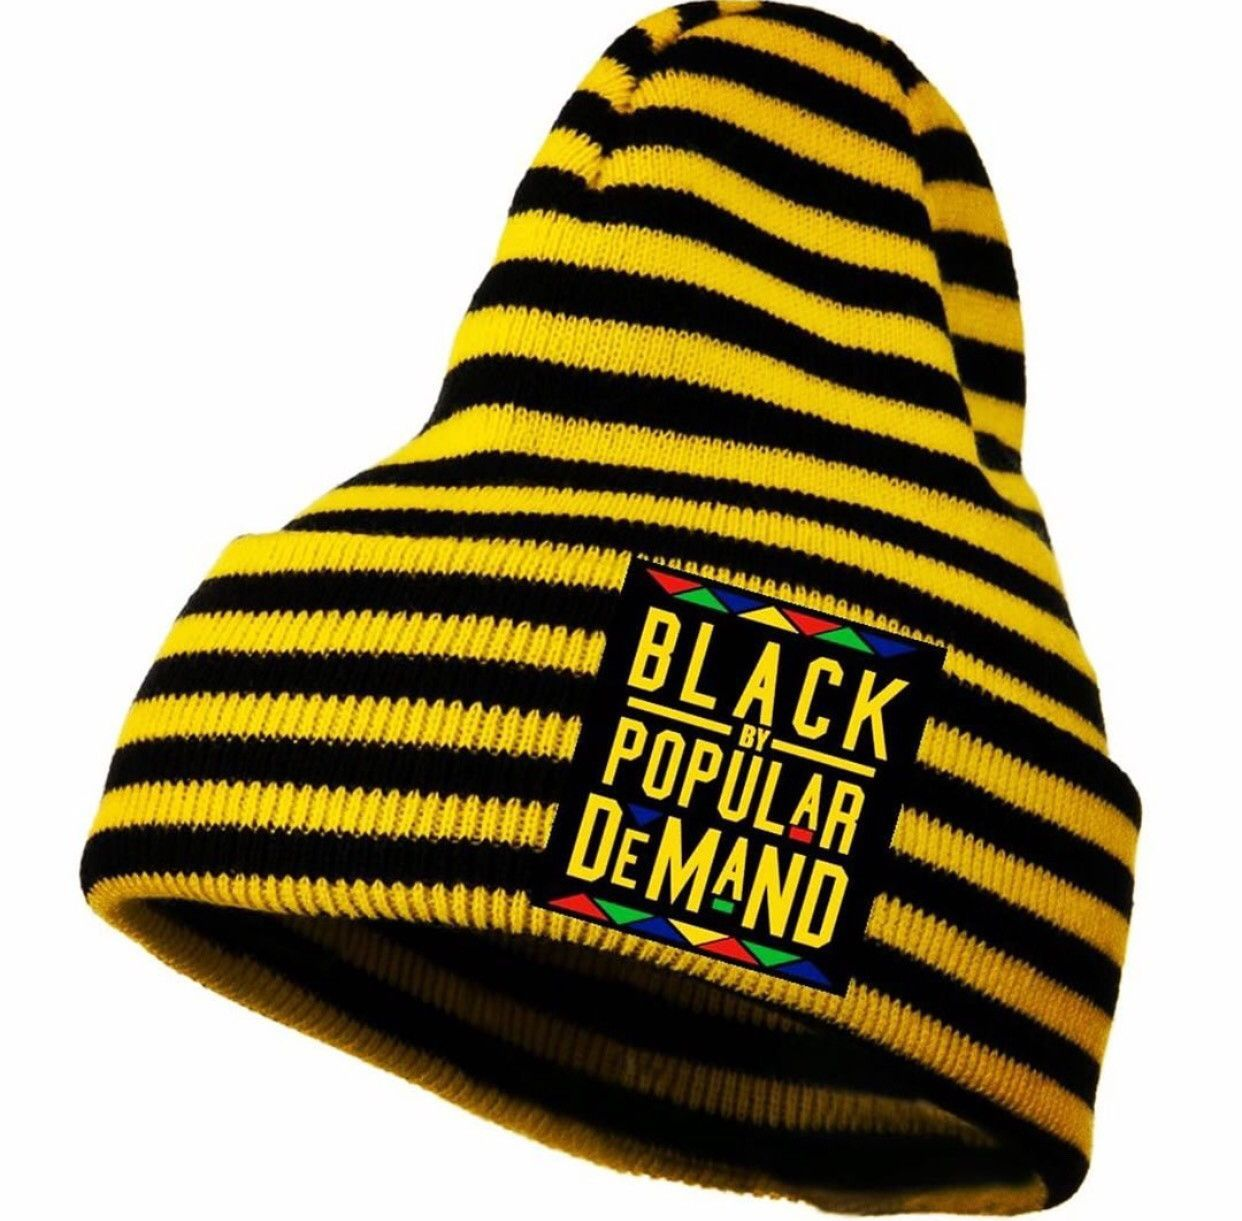 BLACK BY POPULAR DEMAND® yellow striped beanie hat  540404e8282